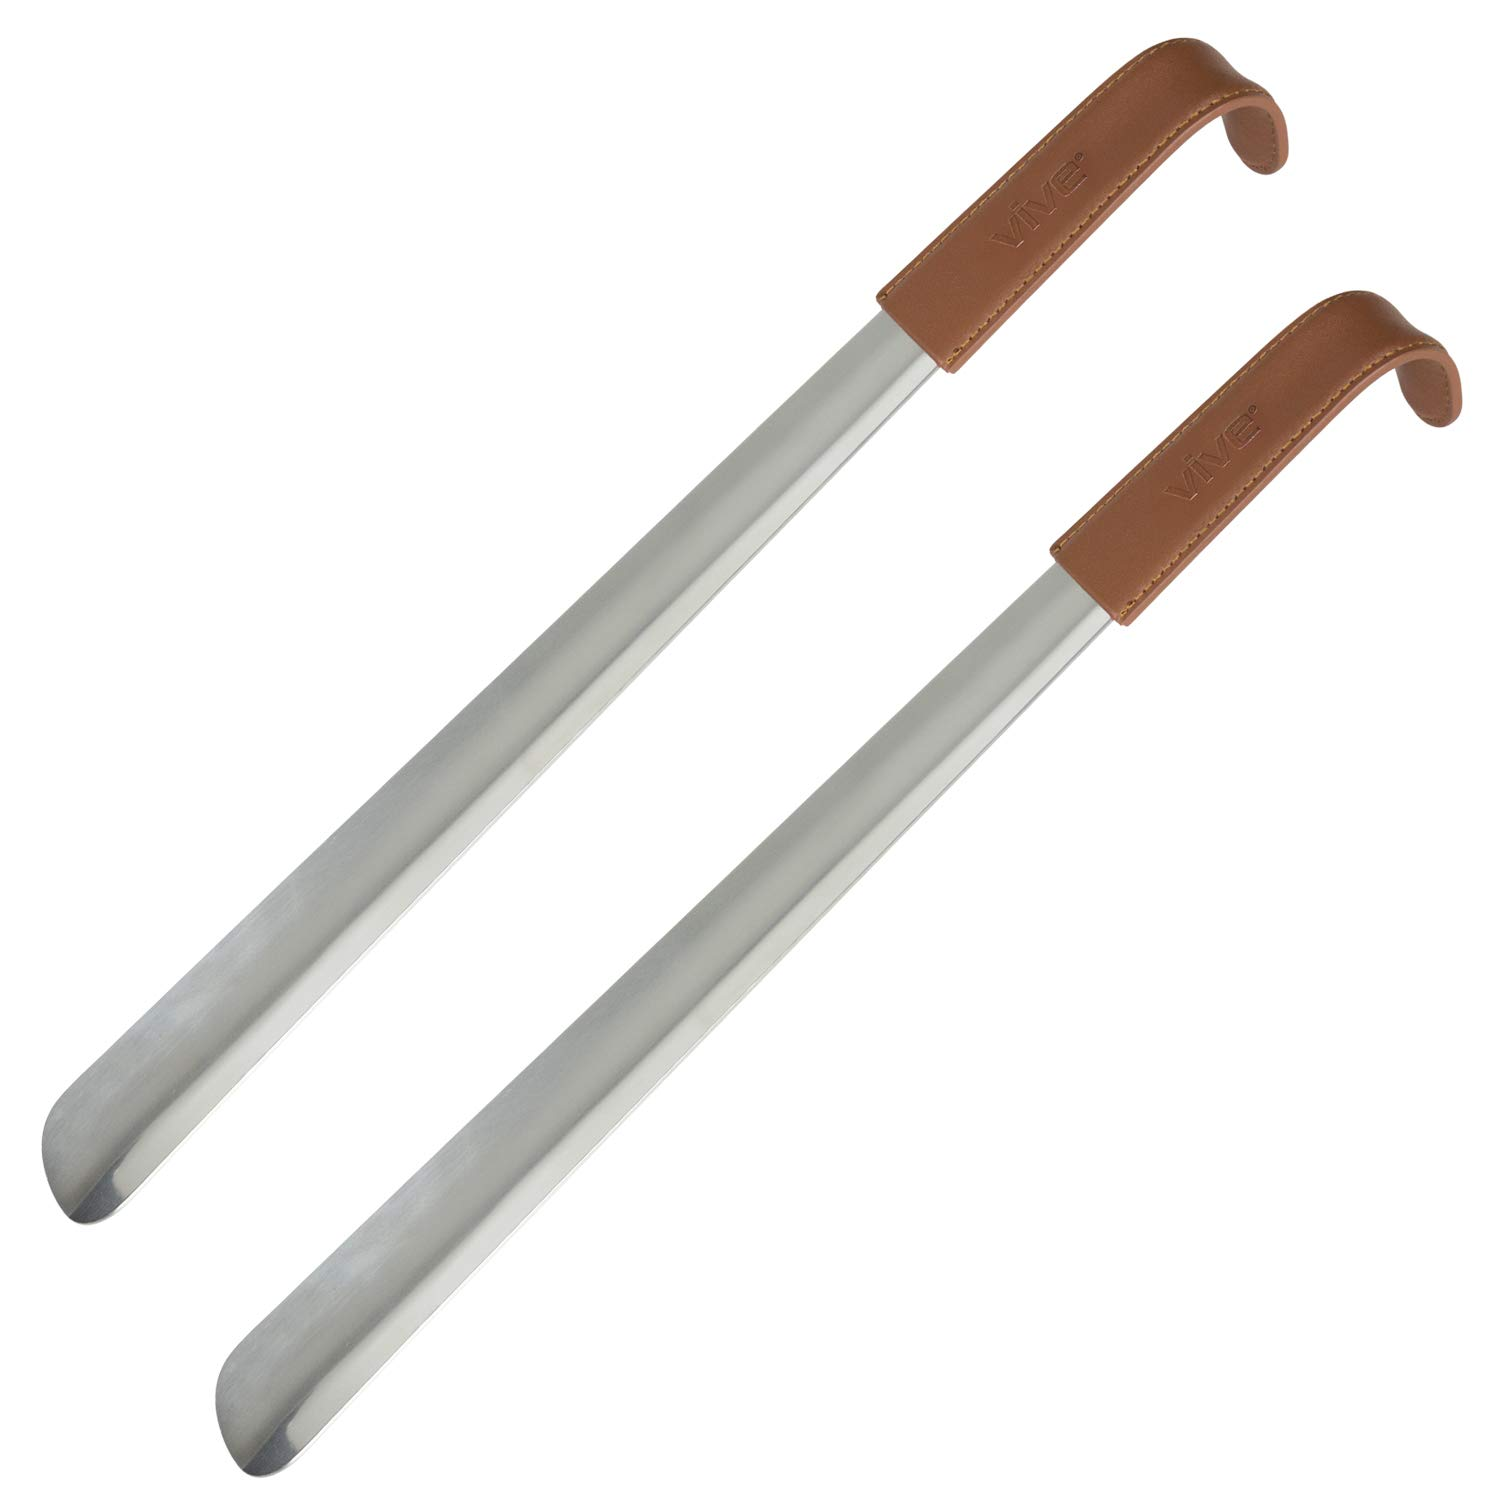 Vive Long Shoe Horn (16.5'', Two Pack) - Metal Shoehorn for Men, Women, Kids, Travel, Boots - Large Extended Mobility Reach Stainless Steel Leather Handle - Dress Assist for Handicap, Elderly, Seniors